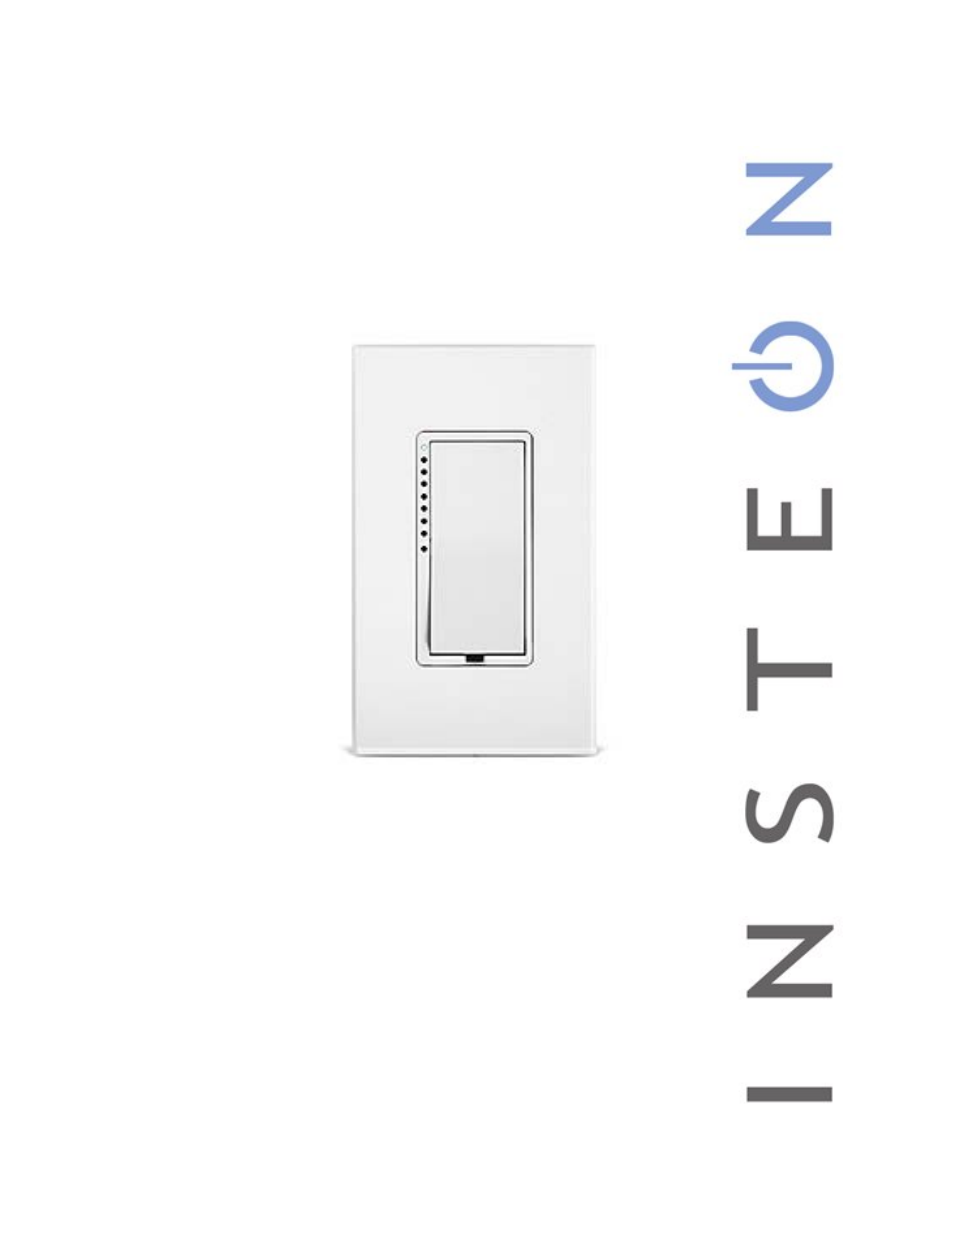 Insteon Switchlinc Relay Dual Band 2477s Manual User 18 3 Way Switch Pages